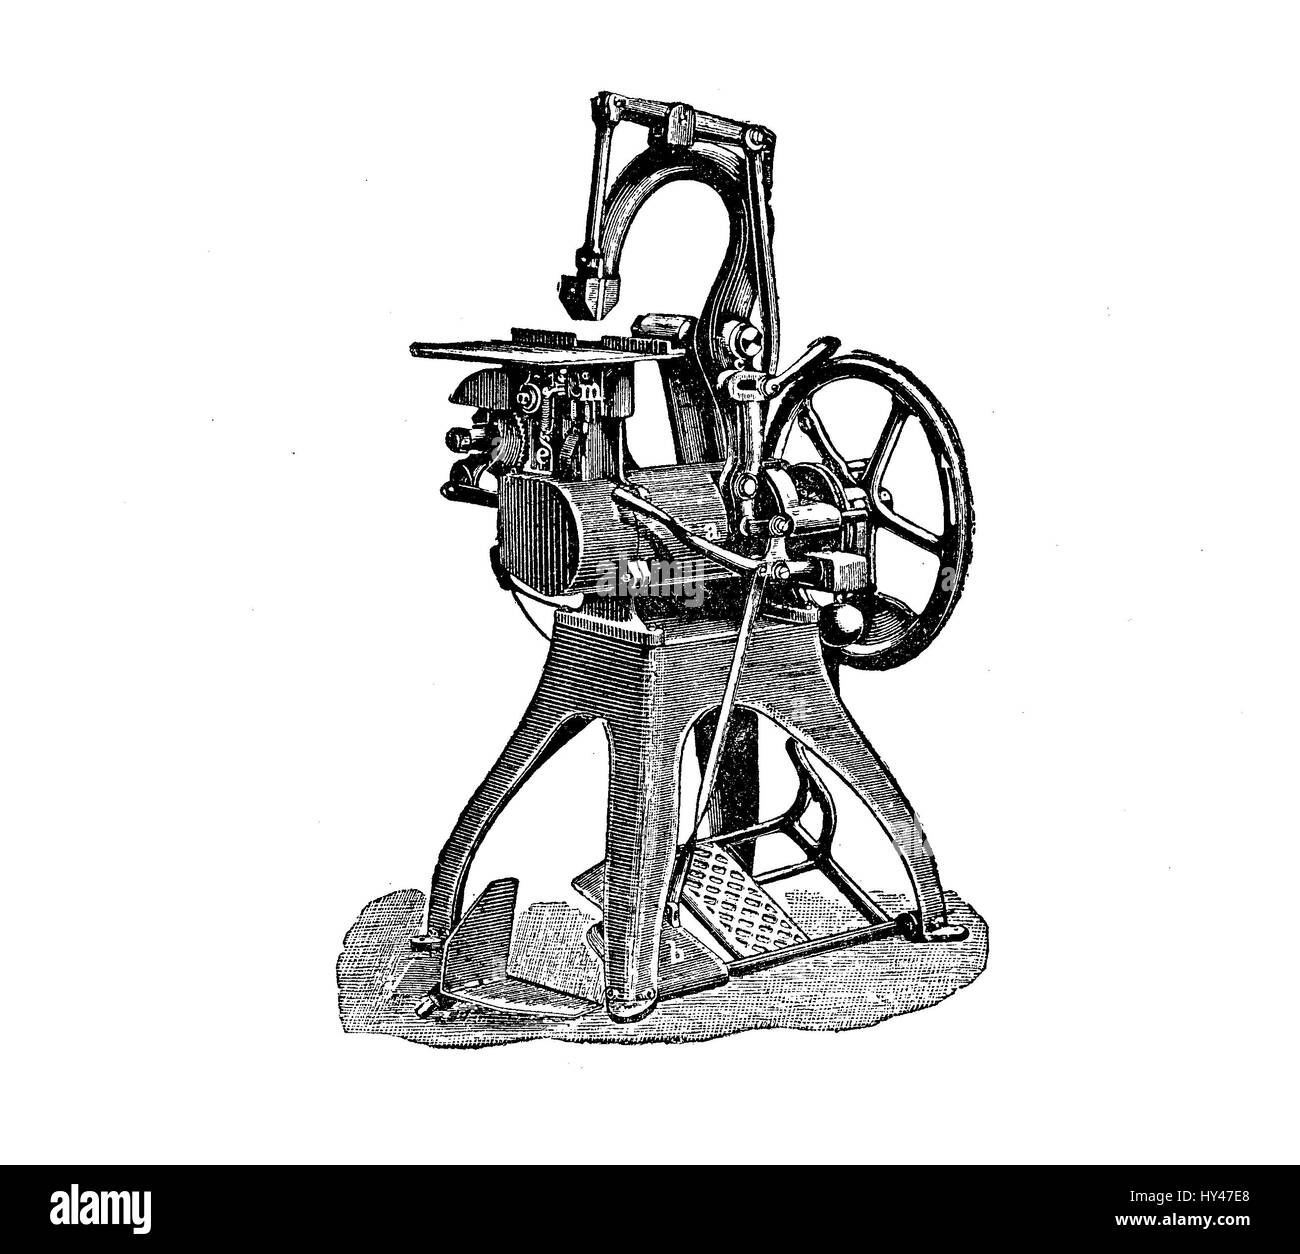 Wire Binding Machine For Press Production Vintage Engraving